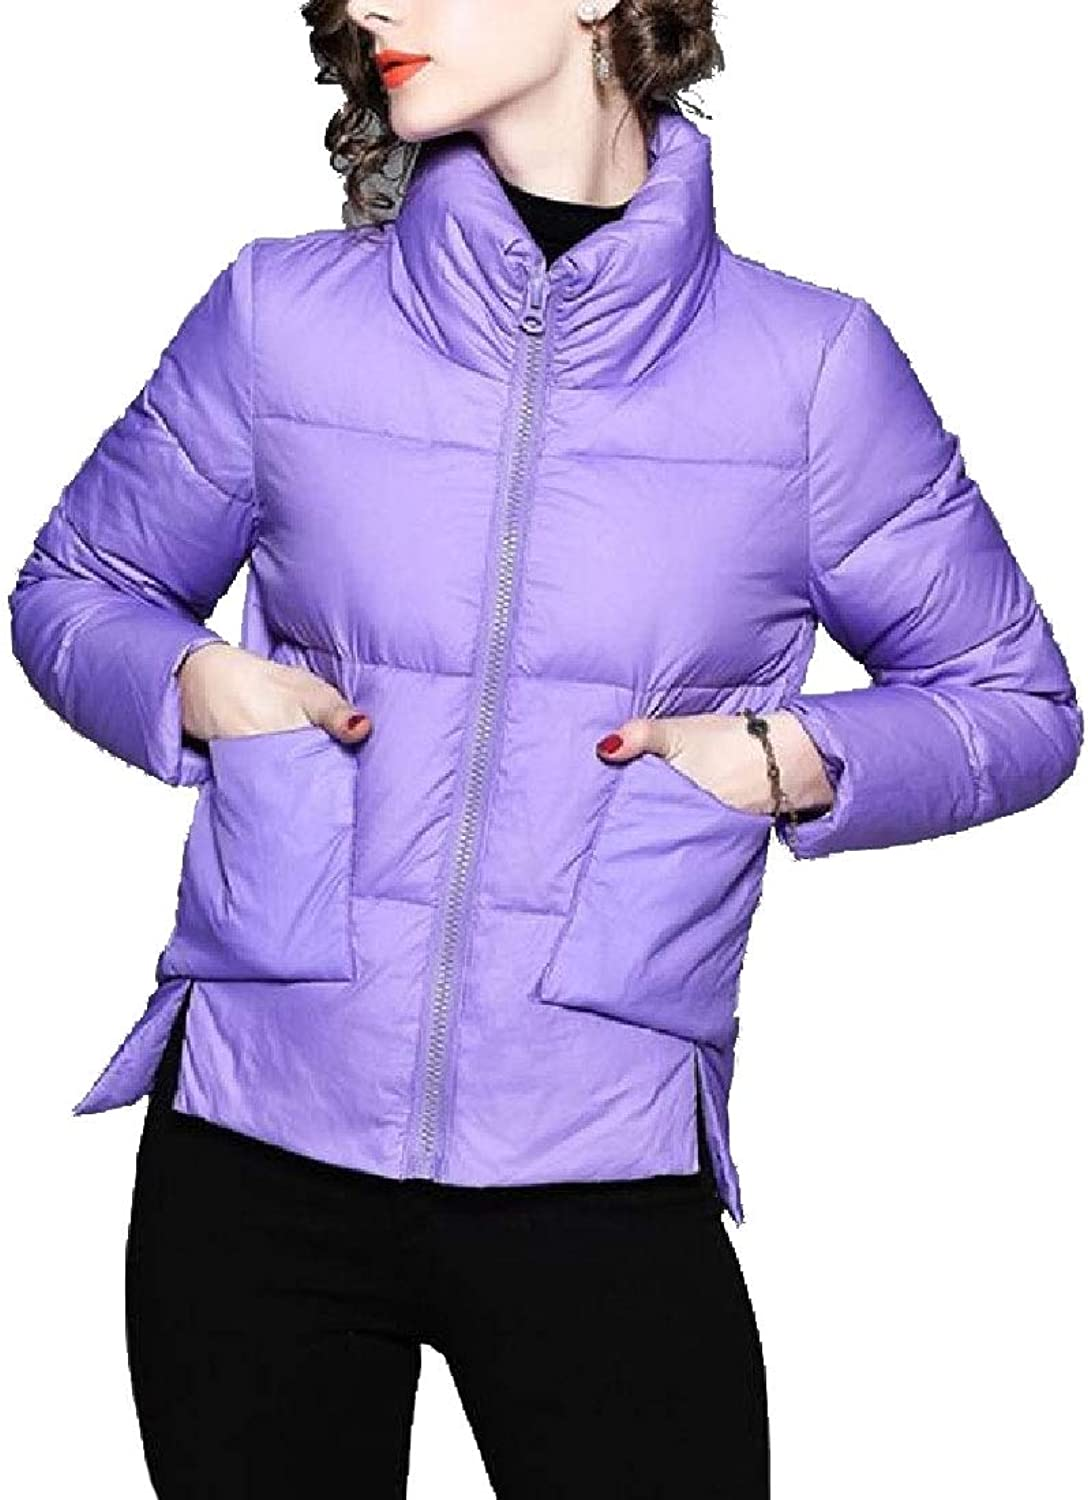 Maweisong Women Warm SnapFront Stand Collar Short Bread Puffer Jacket